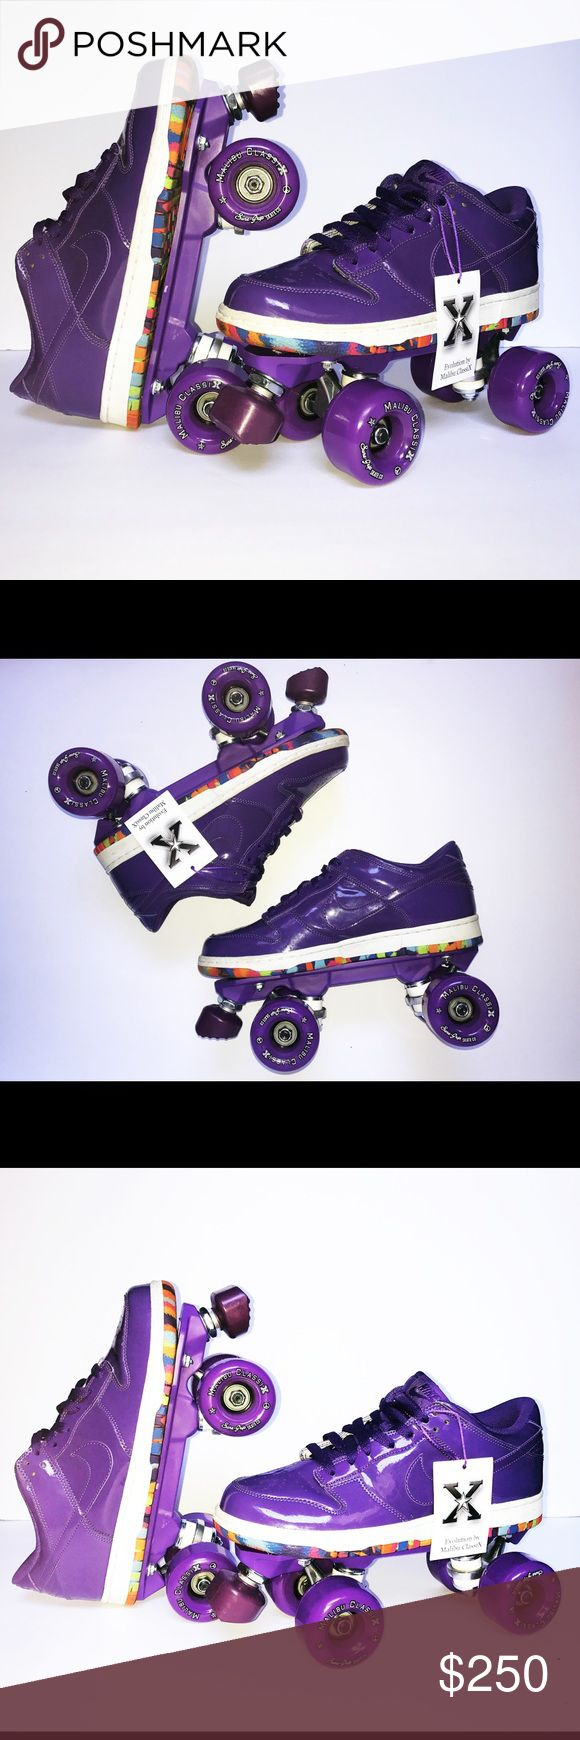 Nike Dunk Roller Skates This is a new one of a kind Indoor/ outdoor Classic Sneaker Roller Skate. The sneaker is a very Rare, 2010 classic Nike Dunk Low, custom designed my Malibu ClassiX.  The purple frame is made of a lightweight DuPont nylon. The wheels are 62mm x 38mm 85A Hardness. Custom Designed Nike Dunk Low Sneaker RollerSkates Nike Shoes Sneakers